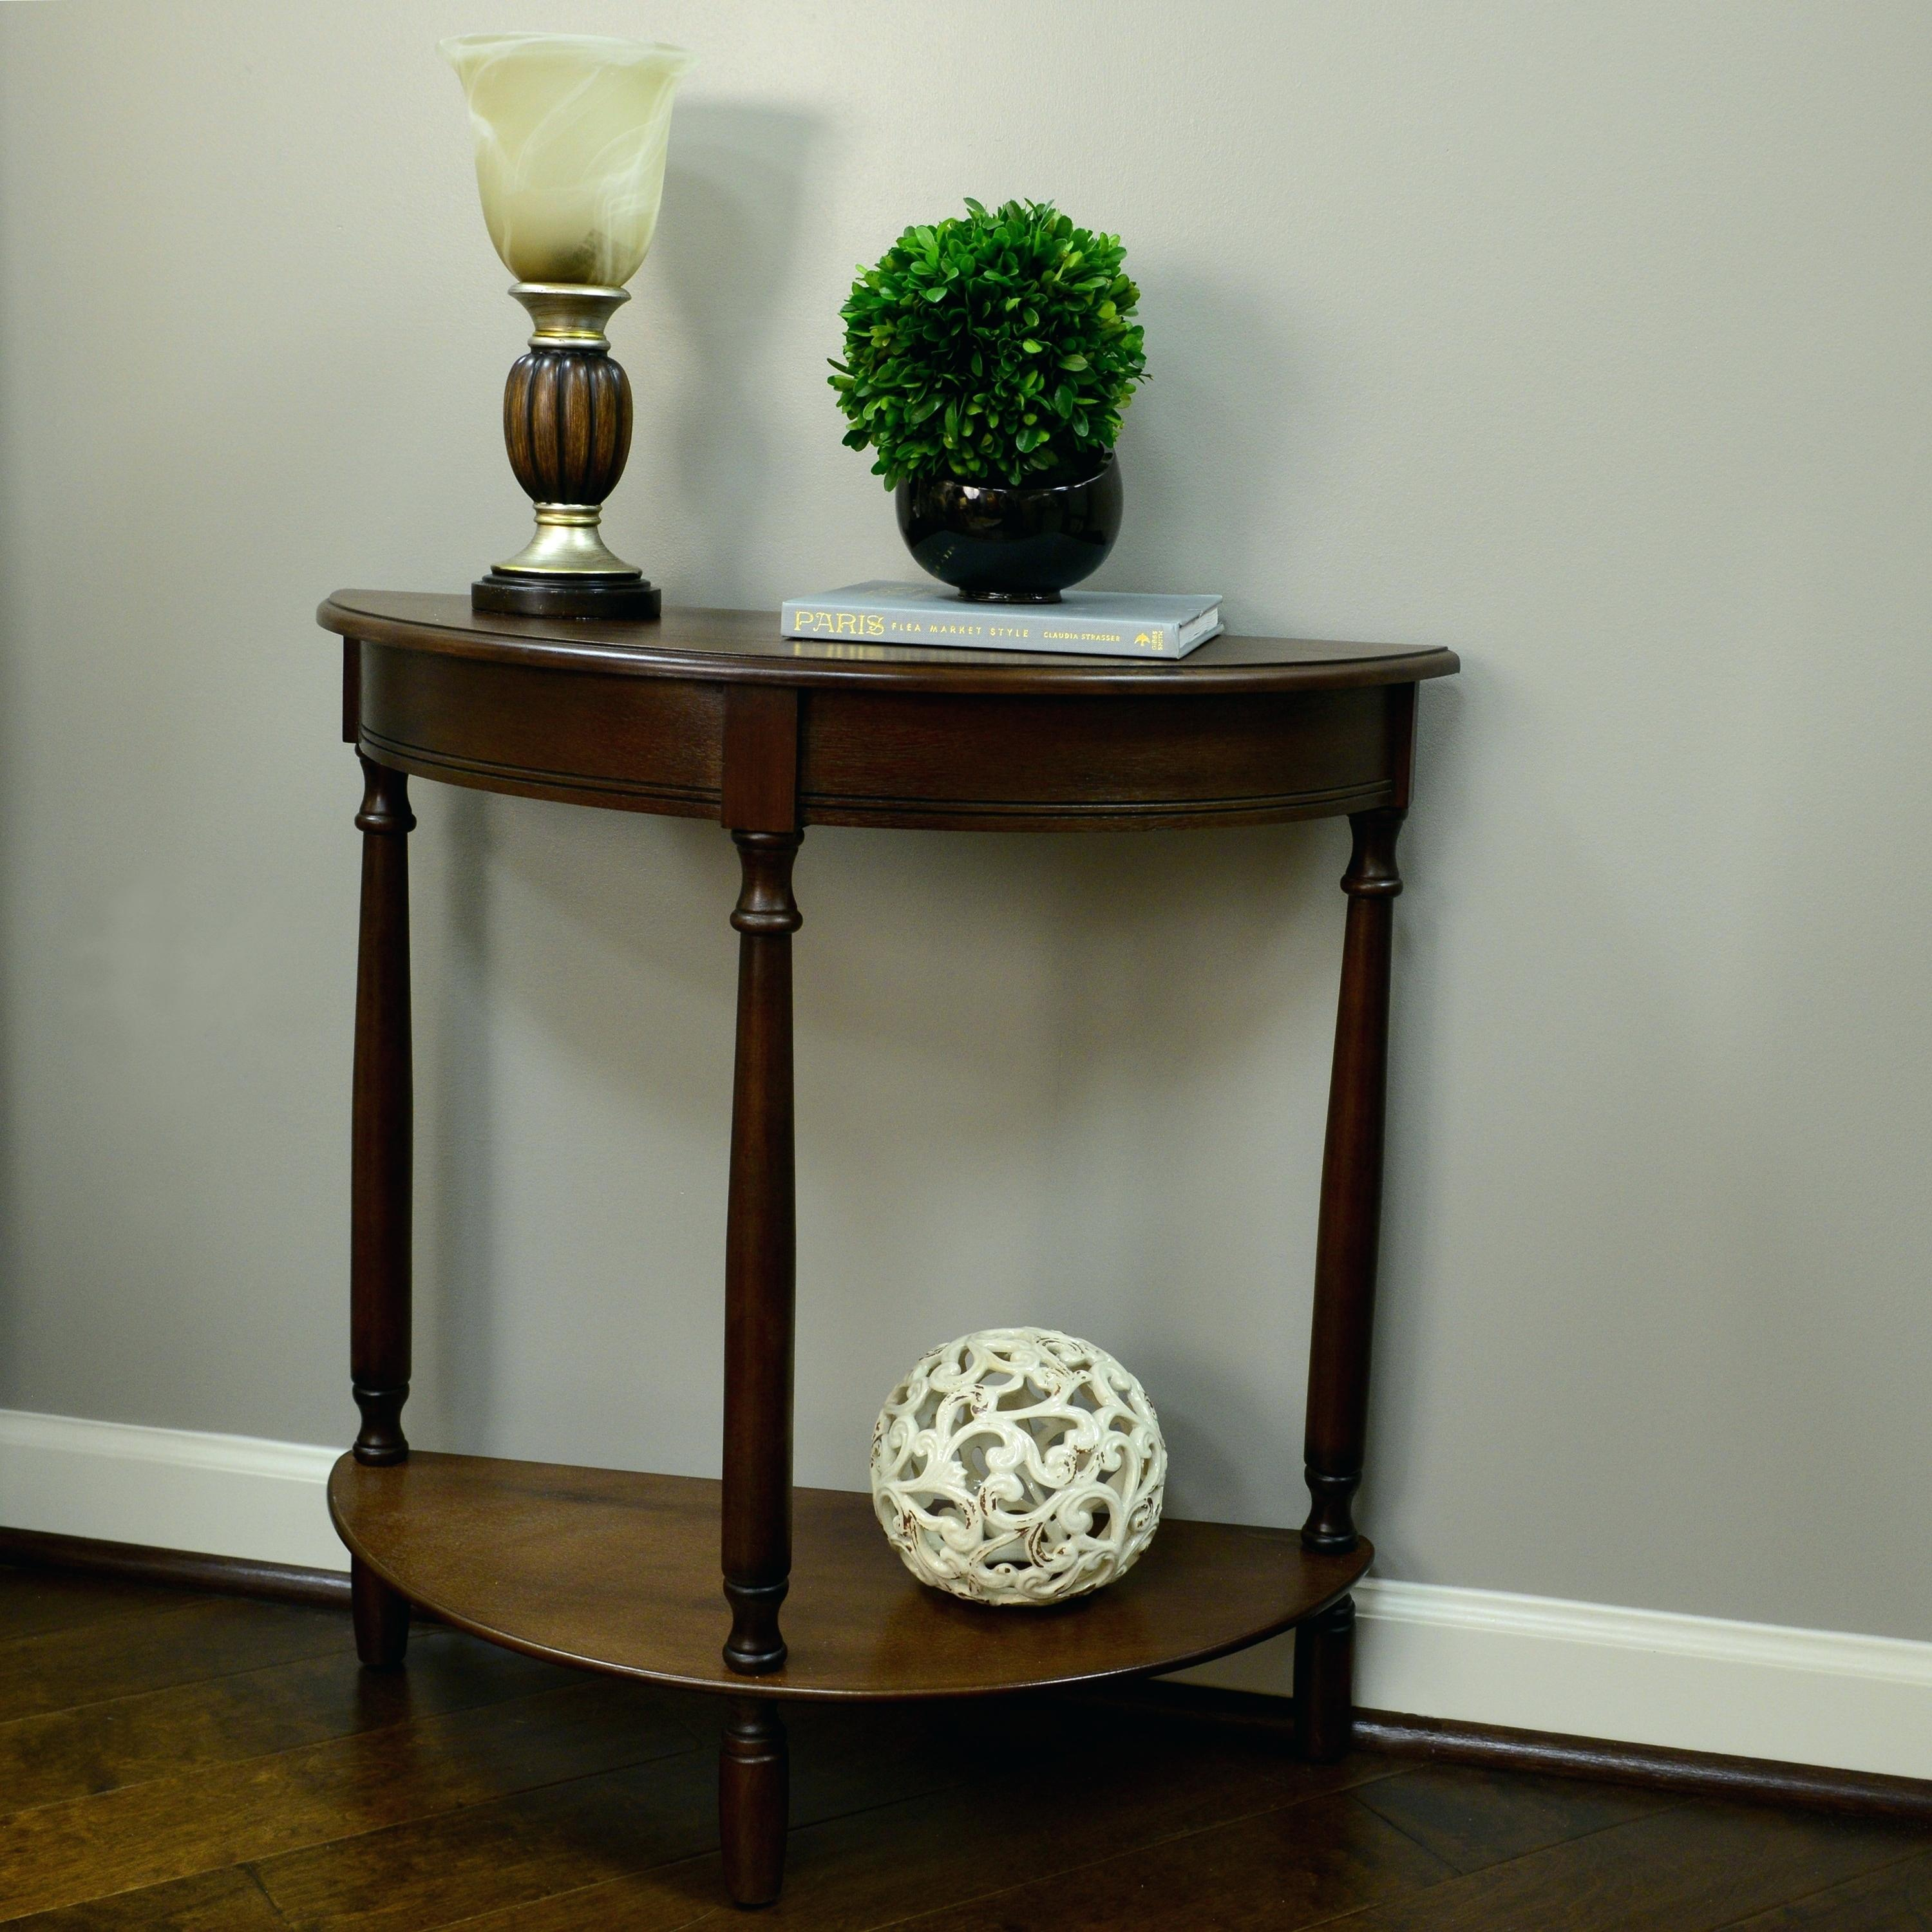 victorian accent tables chairside table with drawers fitmitagnes info laurel creek half round chairs ikea glass coffee and end espresso side outdoor setting covers bar cover sams